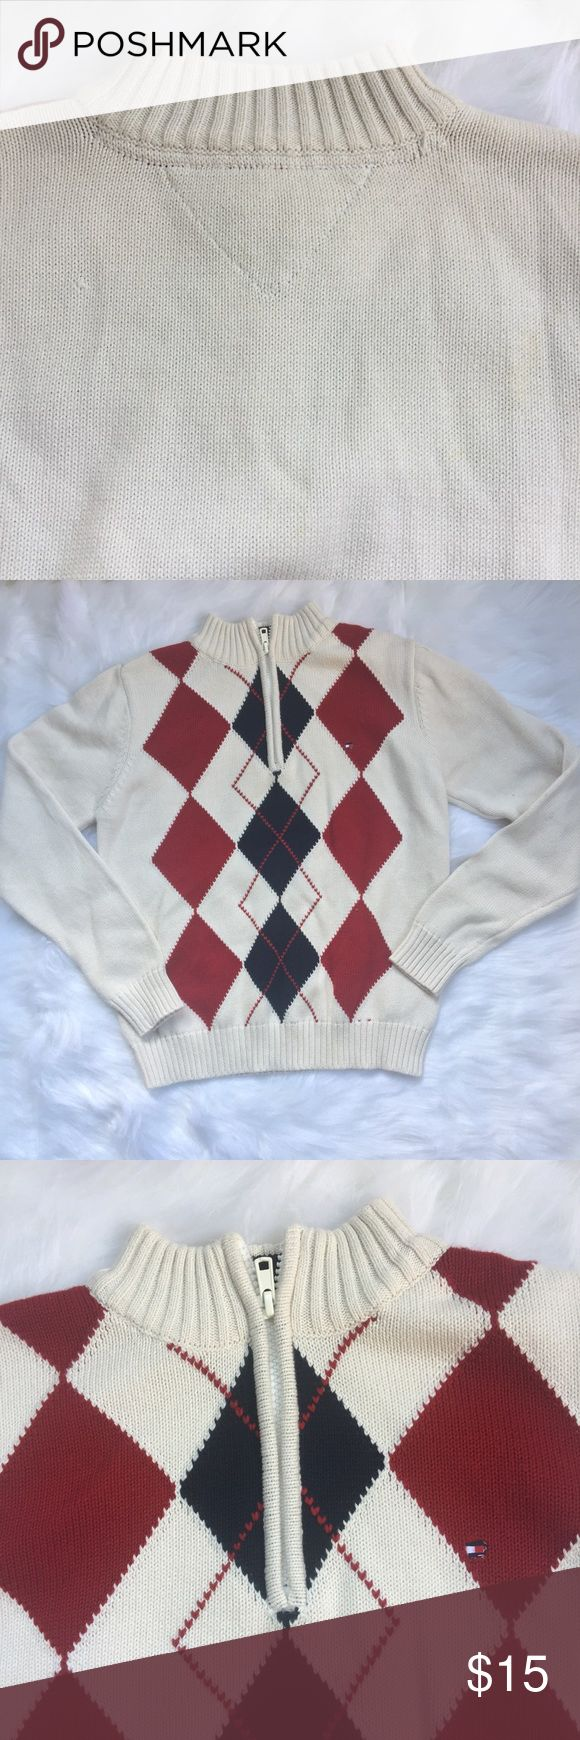 """Tommy Hilfiger Argyle Half Zip Pullover Sweater Tommy Hilfiger White Argyle Half Zip Pullover Boys Knit Sweater Size Small 8-10  Sweater is knit, long sleeve, white, burgundy, blue argyle design, half zip. Sweater is pre owned and in excellent condition: no rips, tears or stains.   Size: Small 8-10 Length: 20.5"""" Sleeves: 21""""  Chest: 24"""" Fabric: 100% Cotton Tommy Hilfiger Shirts & Tops Sweaters"""